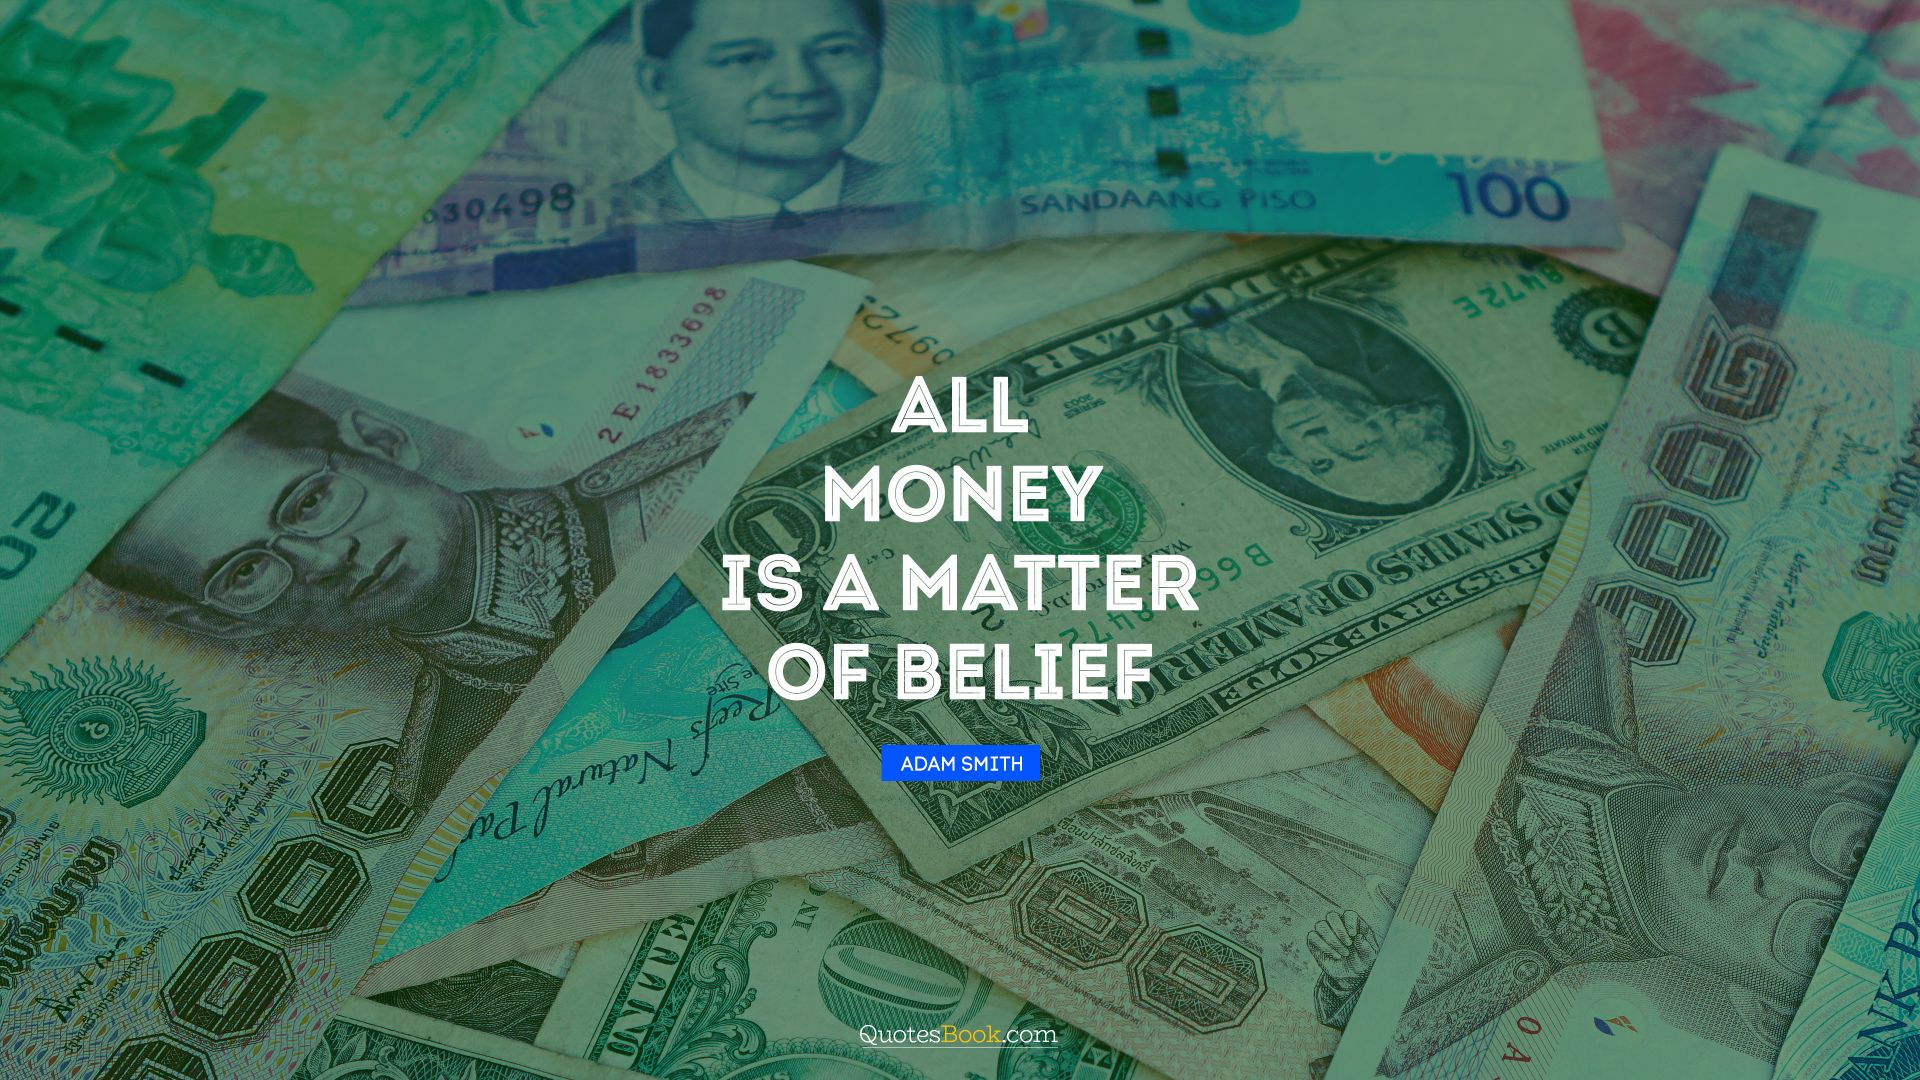 All money is a matter of belief. - Quote by Adam Smith